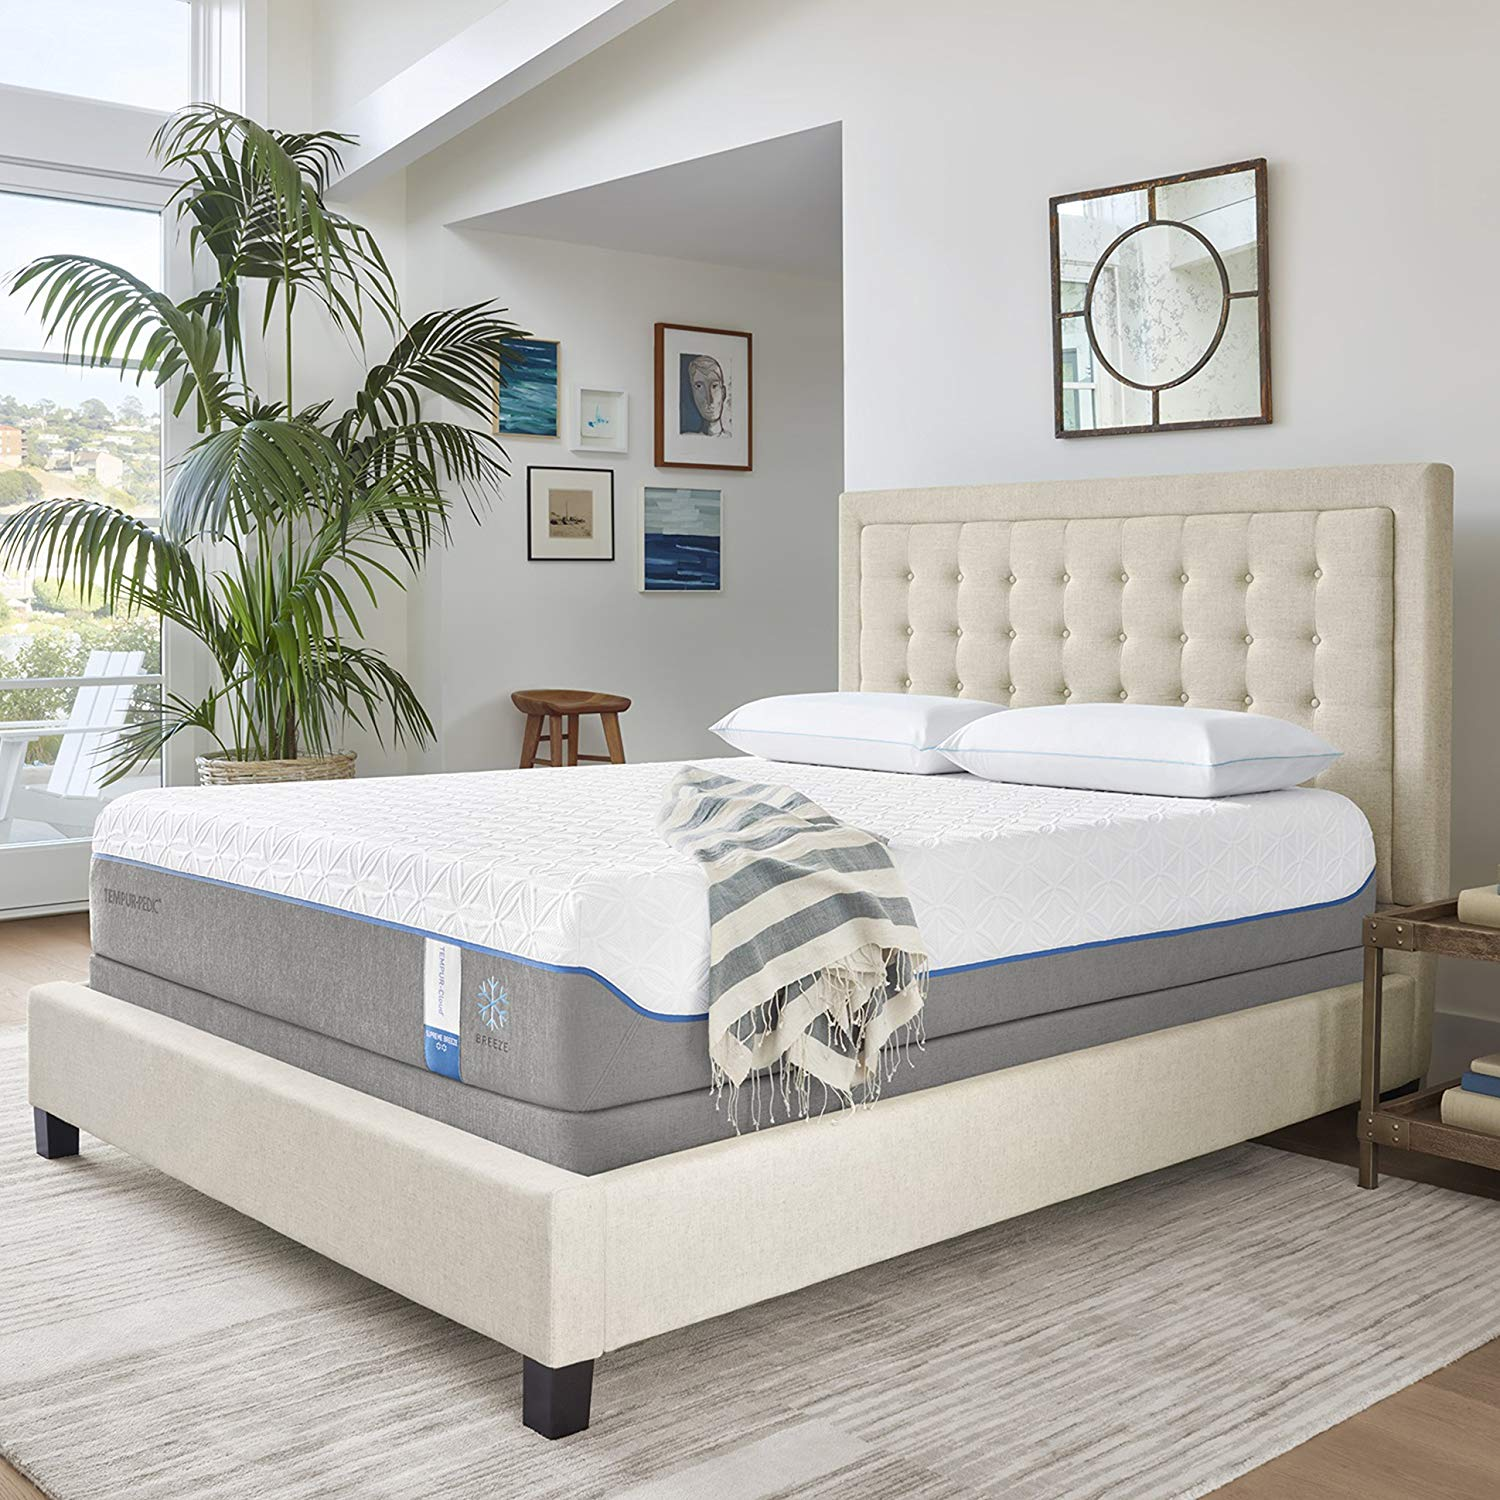 Tempur-Pedic Luxury Mattress review by www.snoremagazine.com